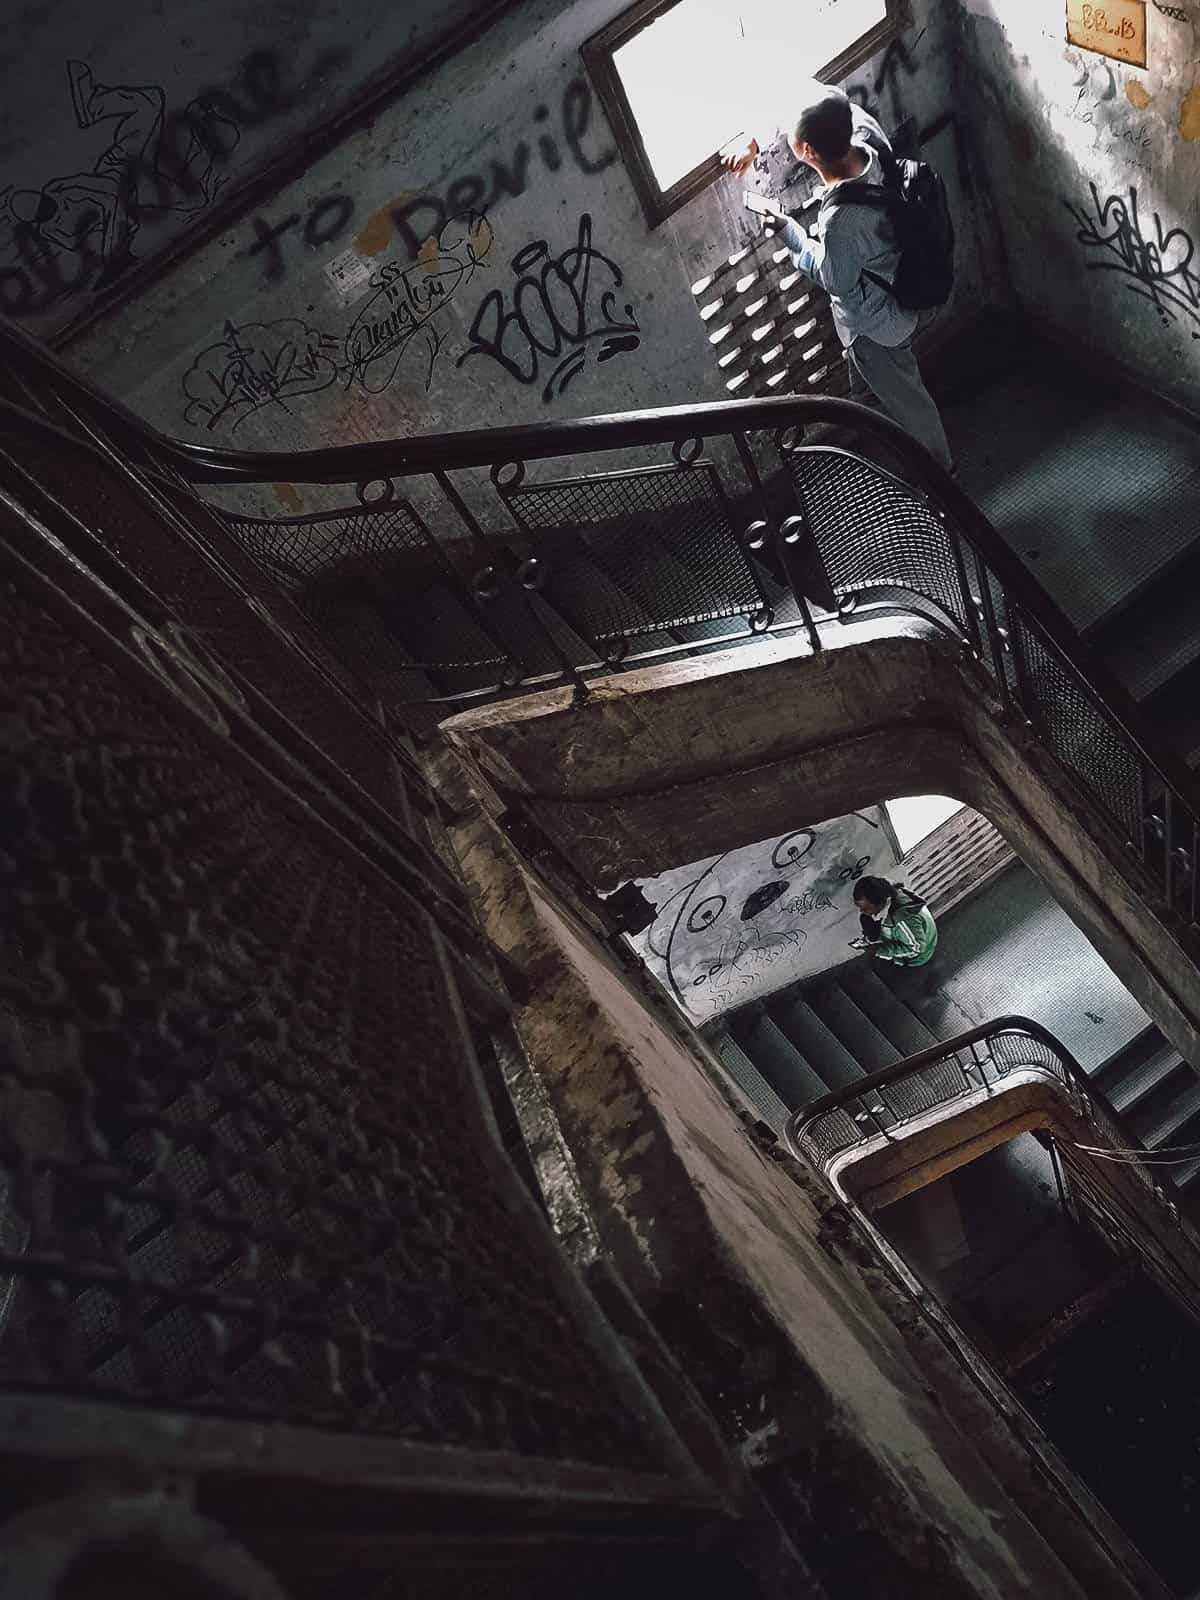 Stairwell inside the Ton That Dam building